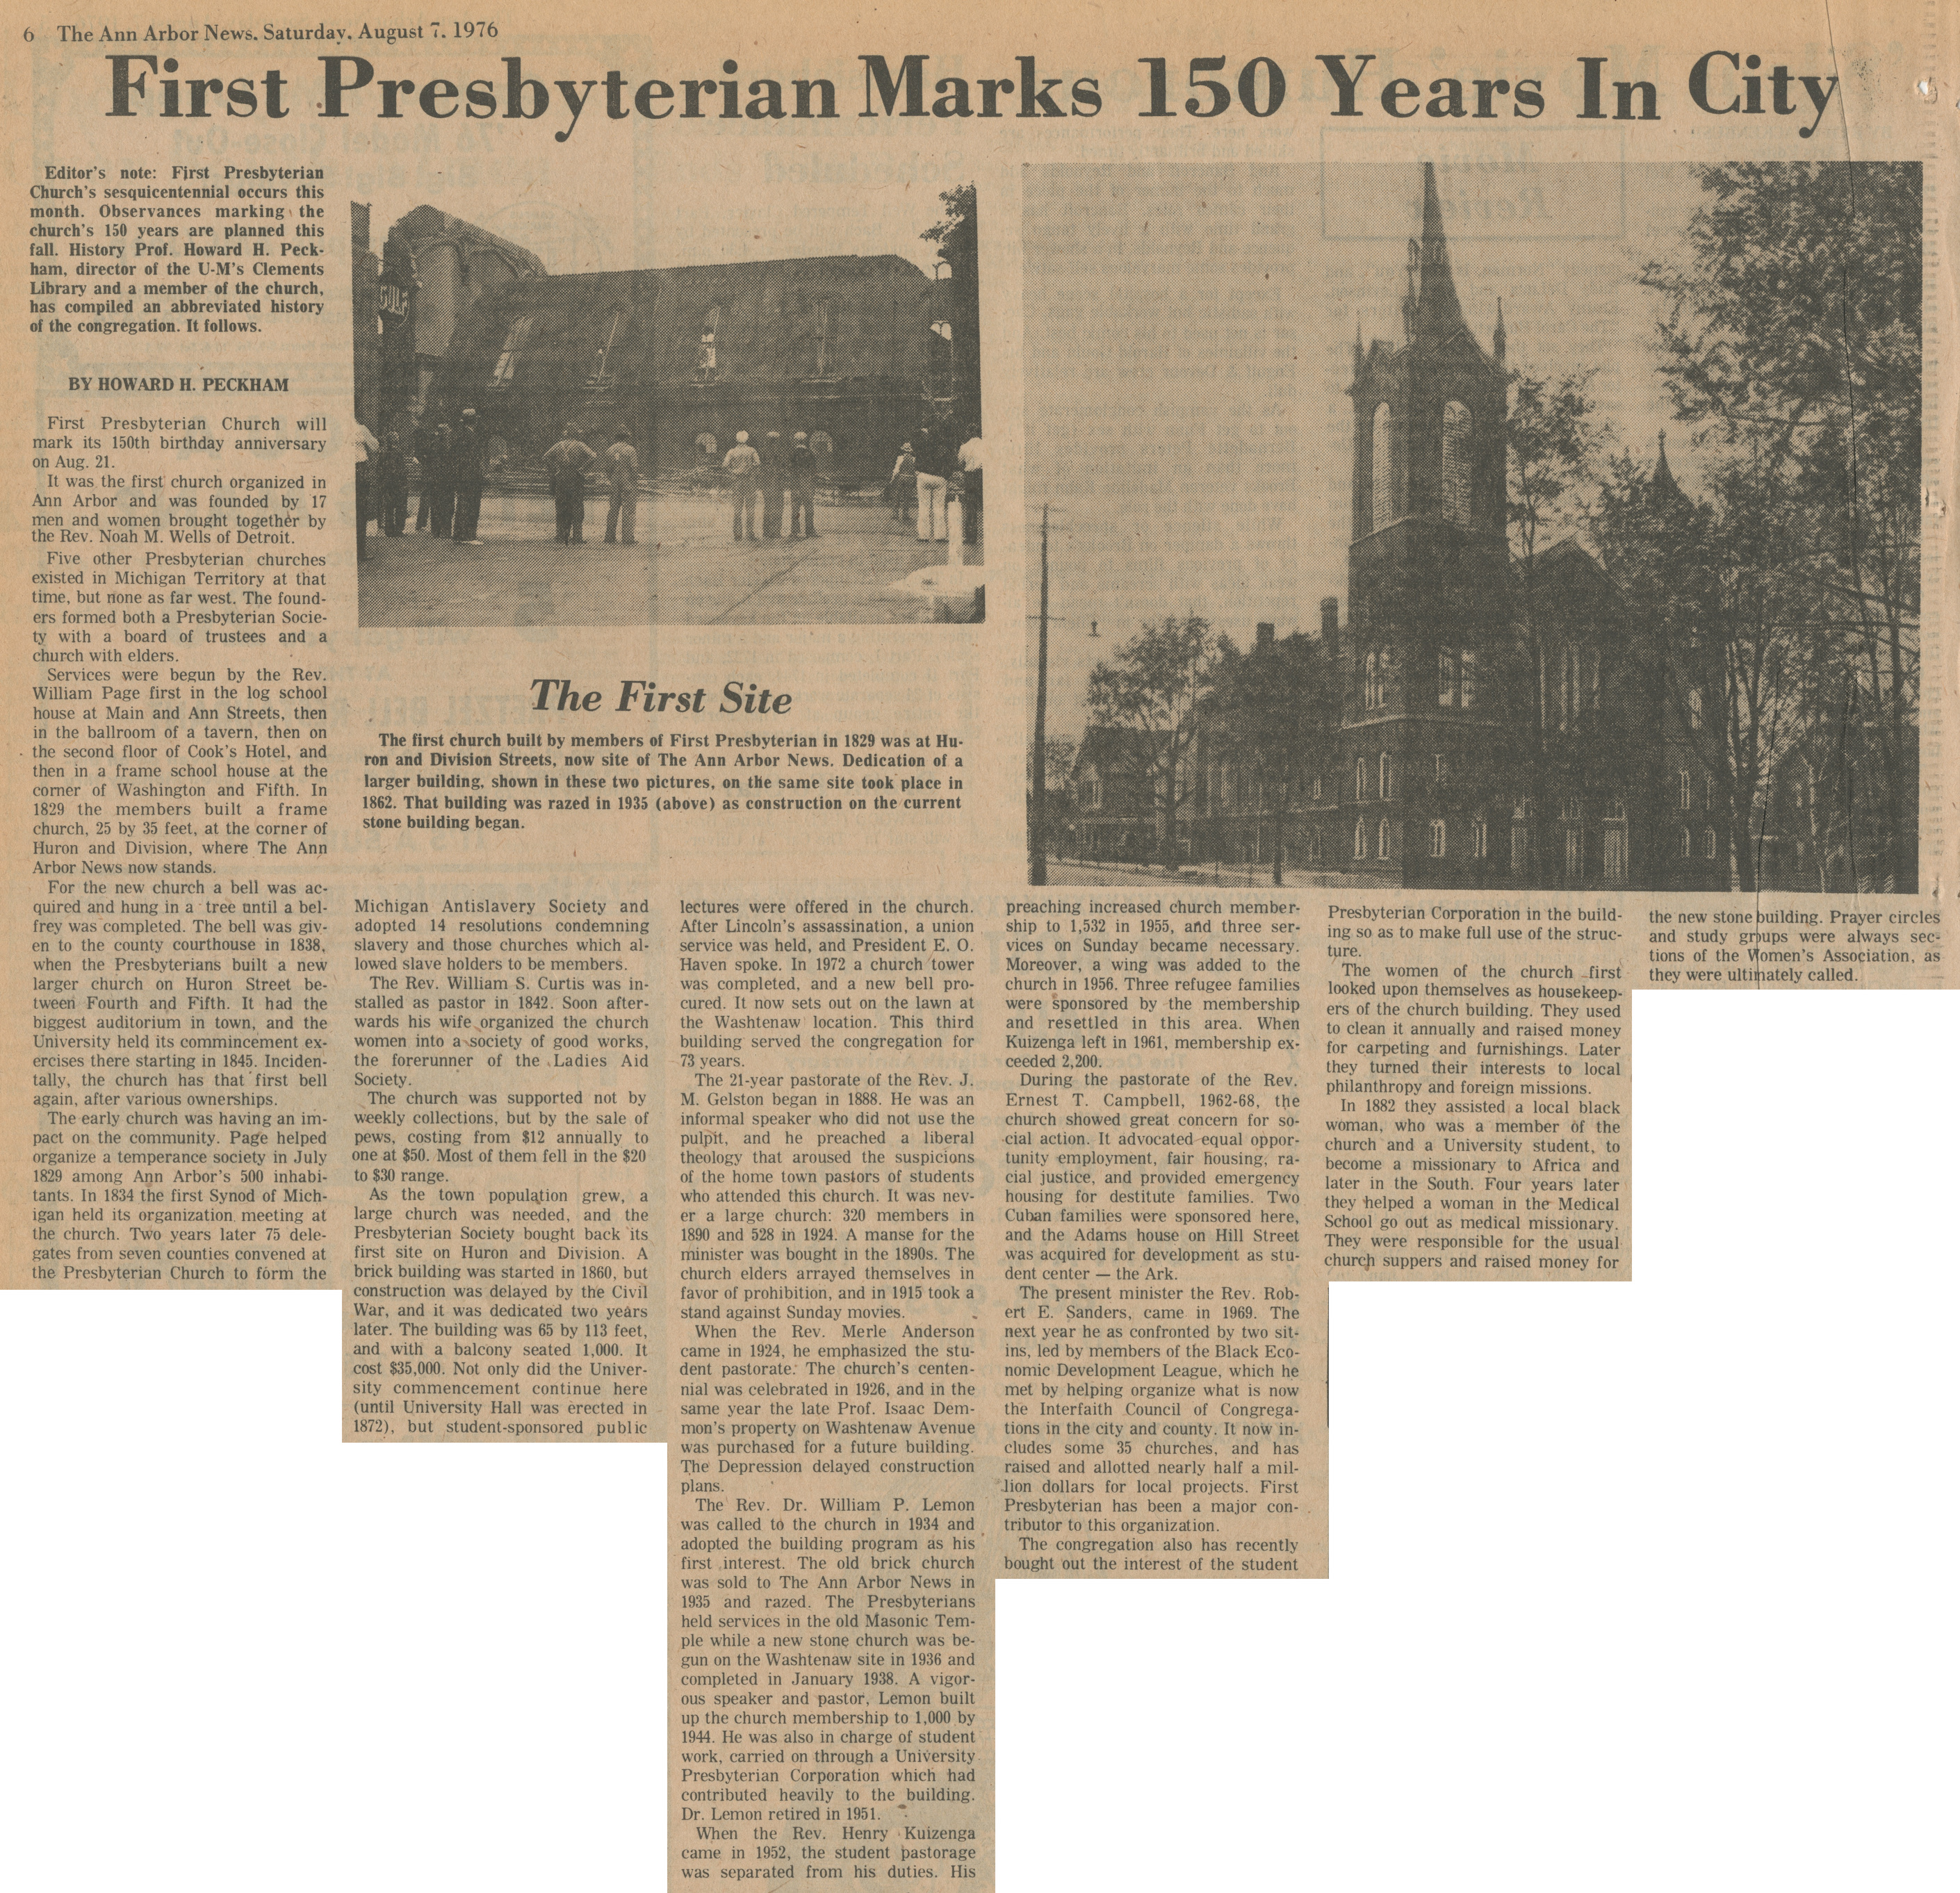 First Presbyterian Marks 150 Years In City image